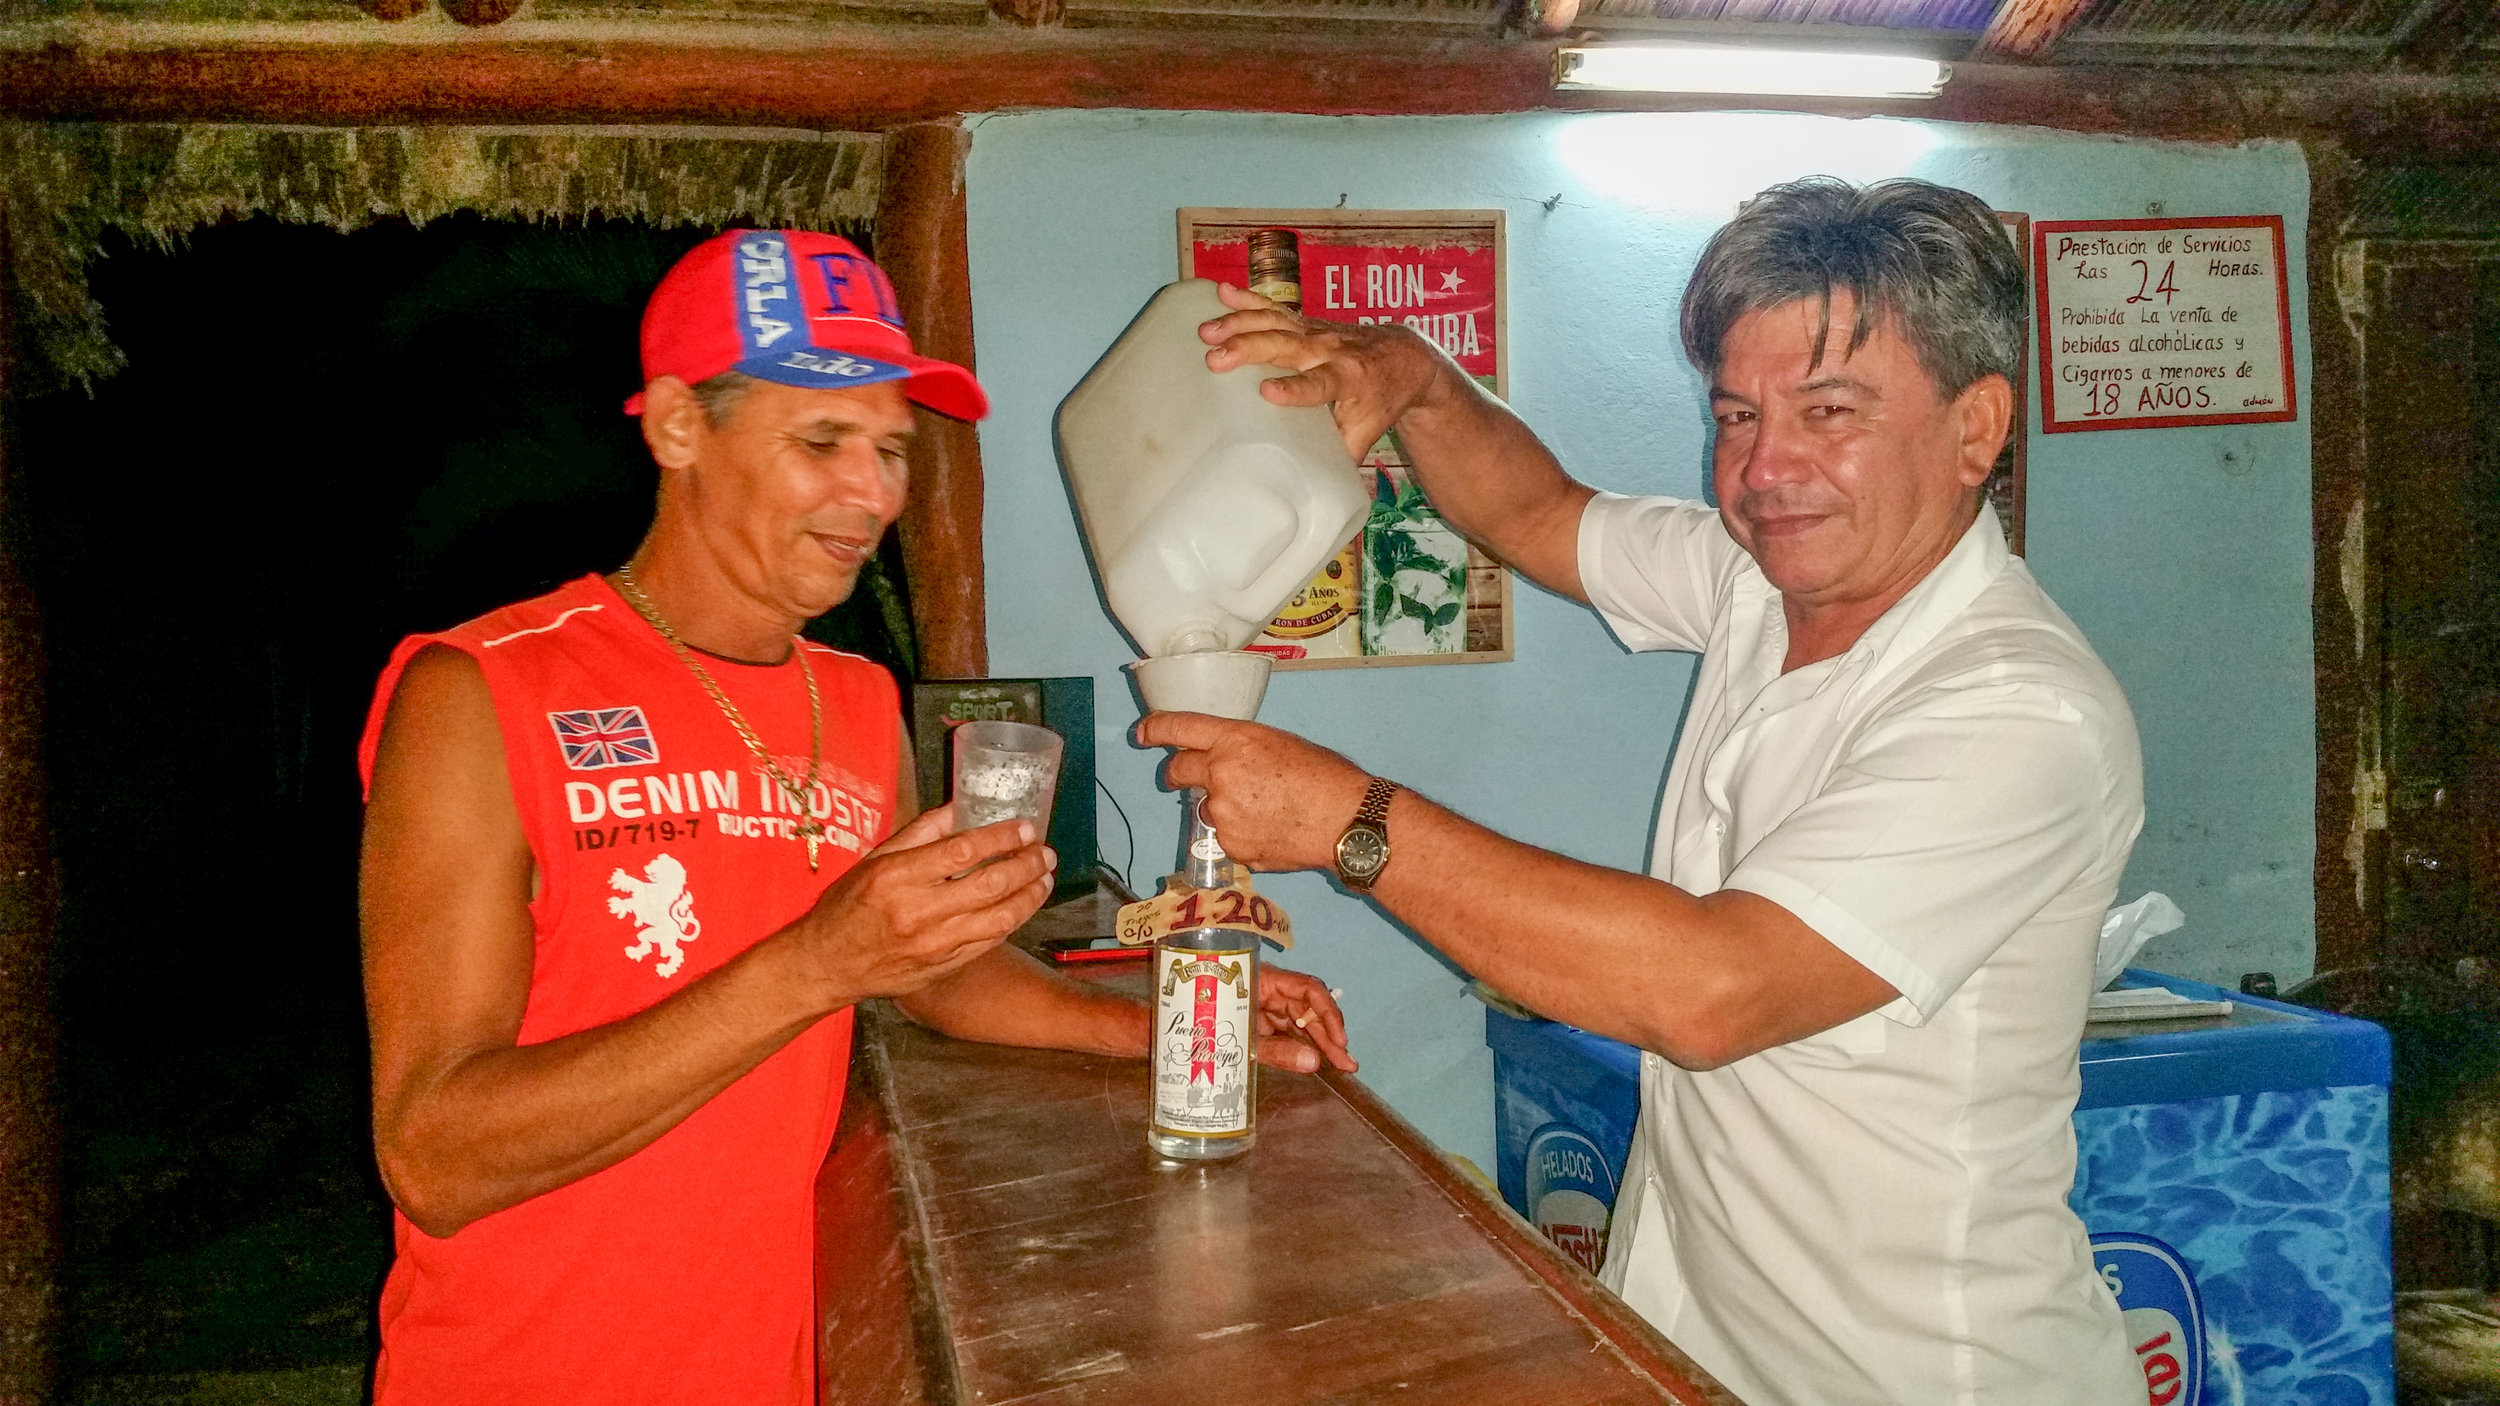 A bartender in Santa Lucia, Camaguey, pouring beer from recycled containers